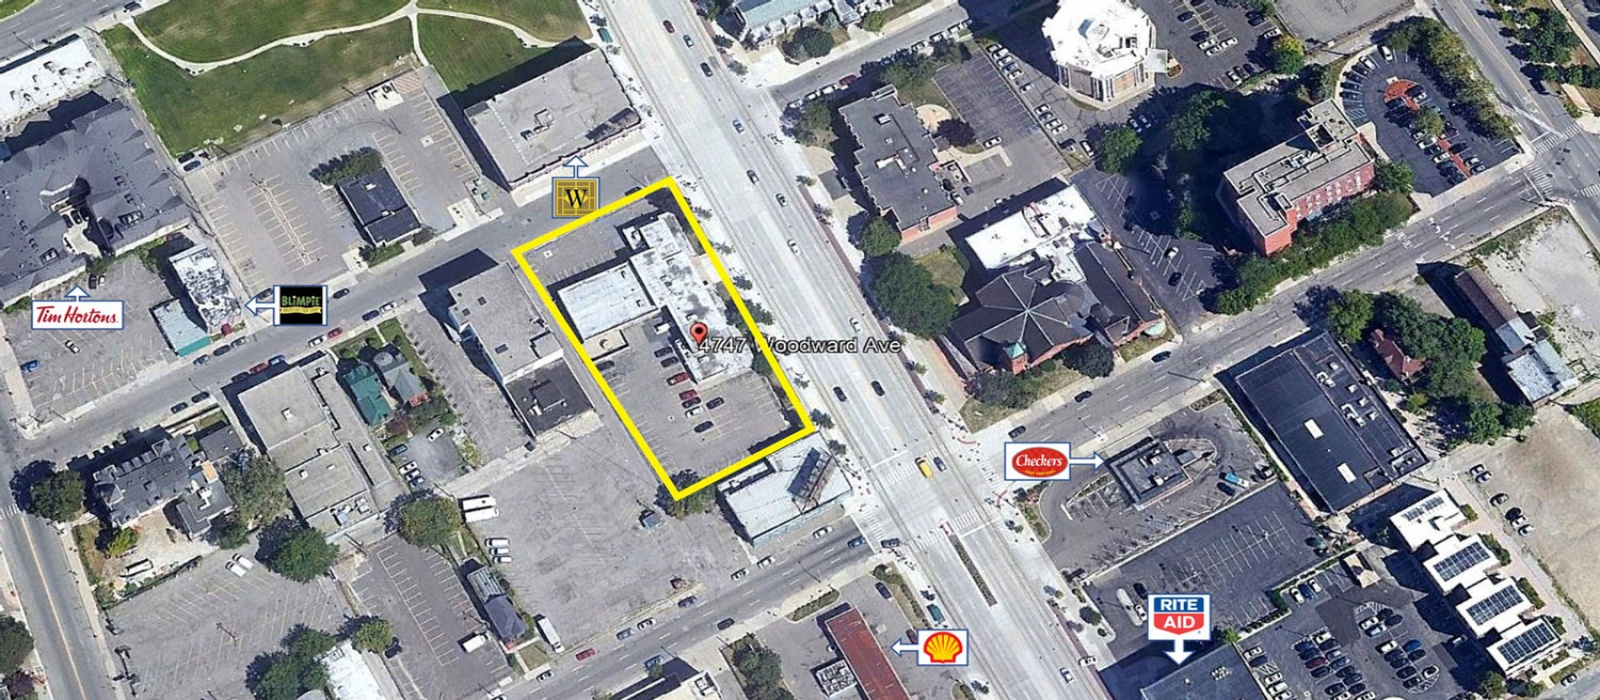 4747 Woodward Ave, Detroit, Michigan 48201, ,Office,For Sale,4747 Woodward Ave,1013